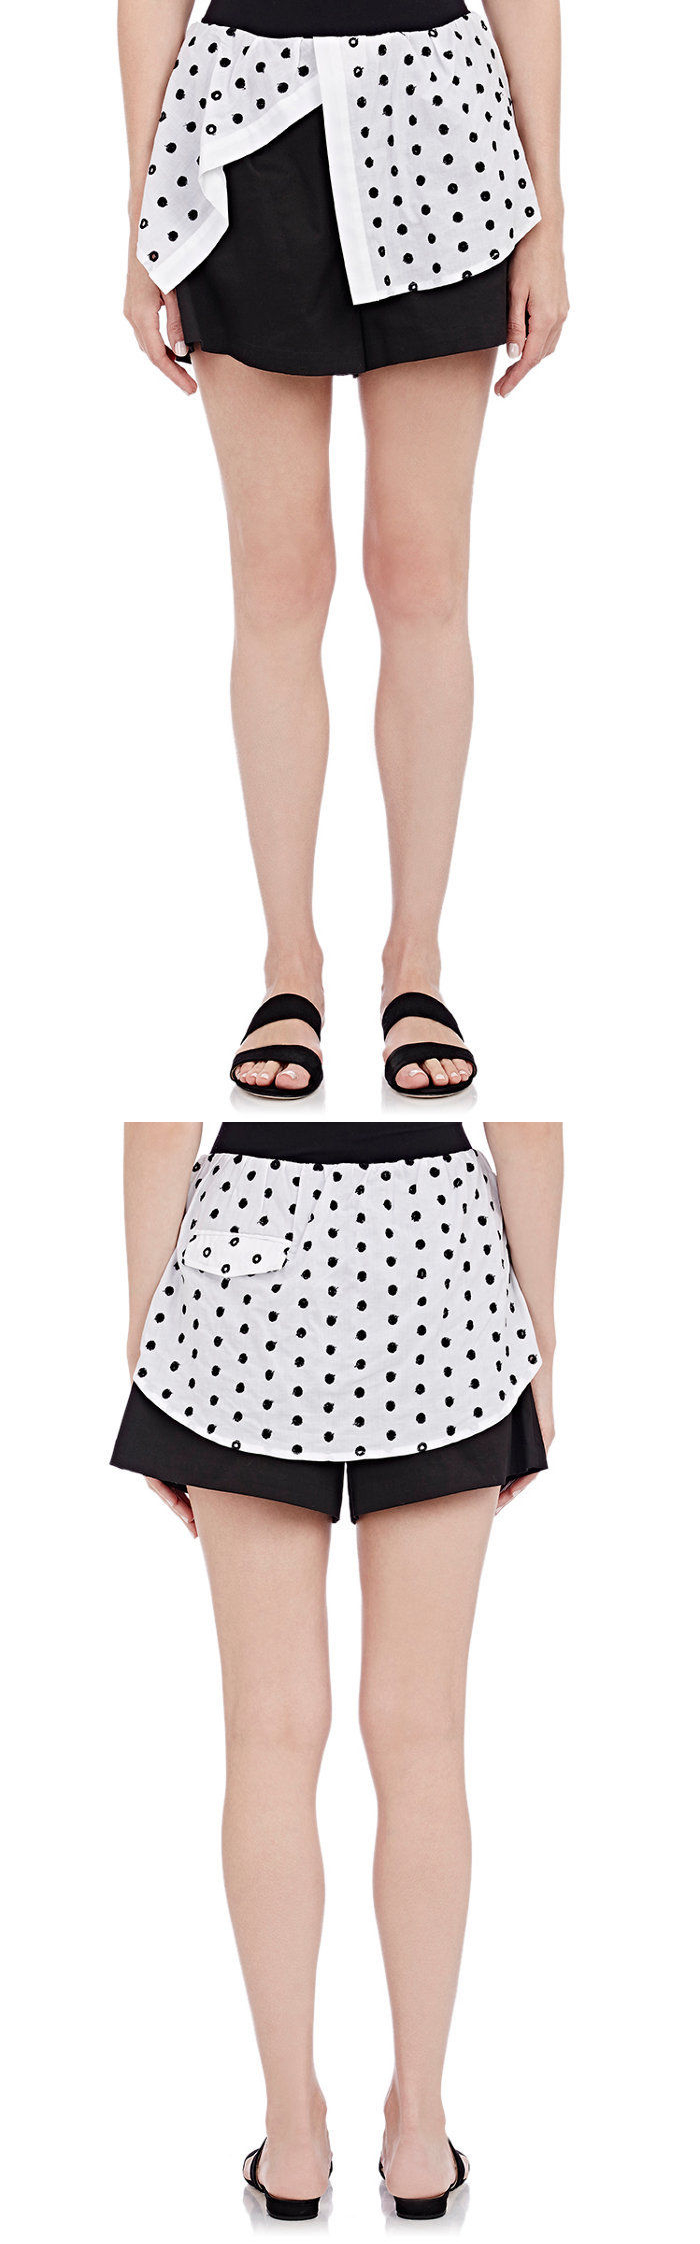 Shorts 11555: New $368 Thakoon Addition Shirttail Look Shorts Black White Us Size 6 -> BUY IT NOW ONLY: $30 on eBay!